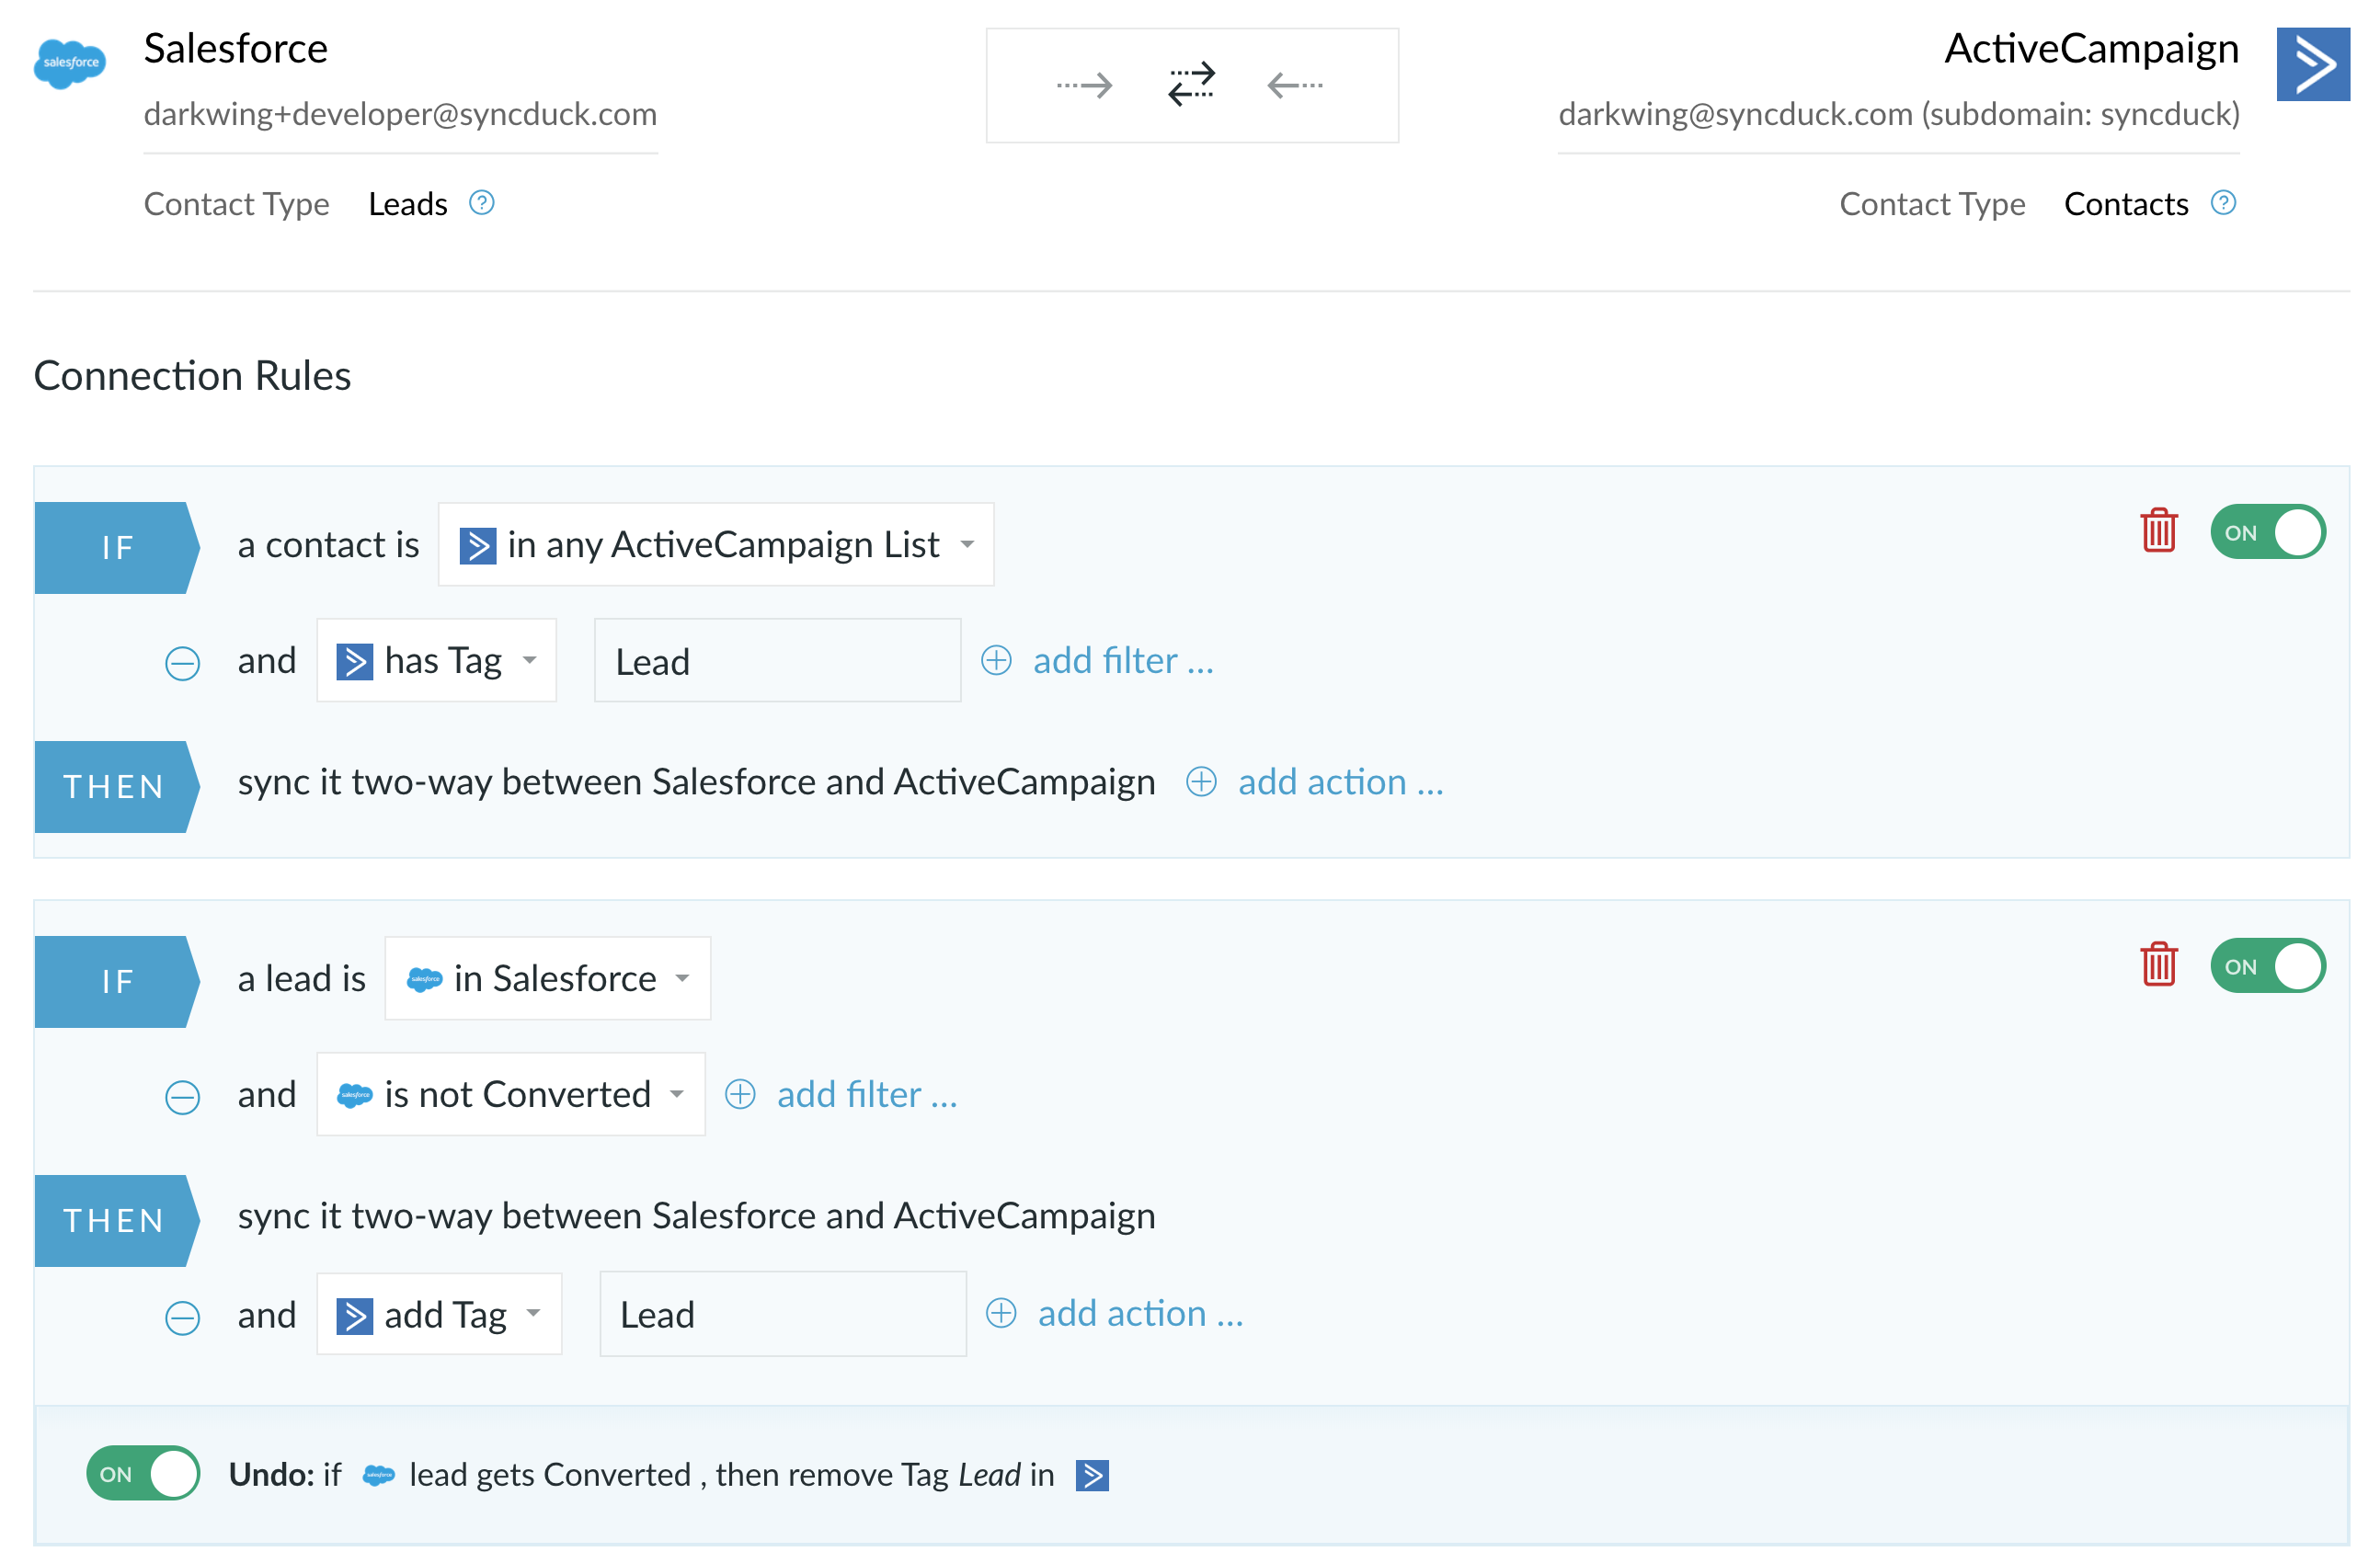 Combine the power of Salesforce and ActiveCampaign - PieSync